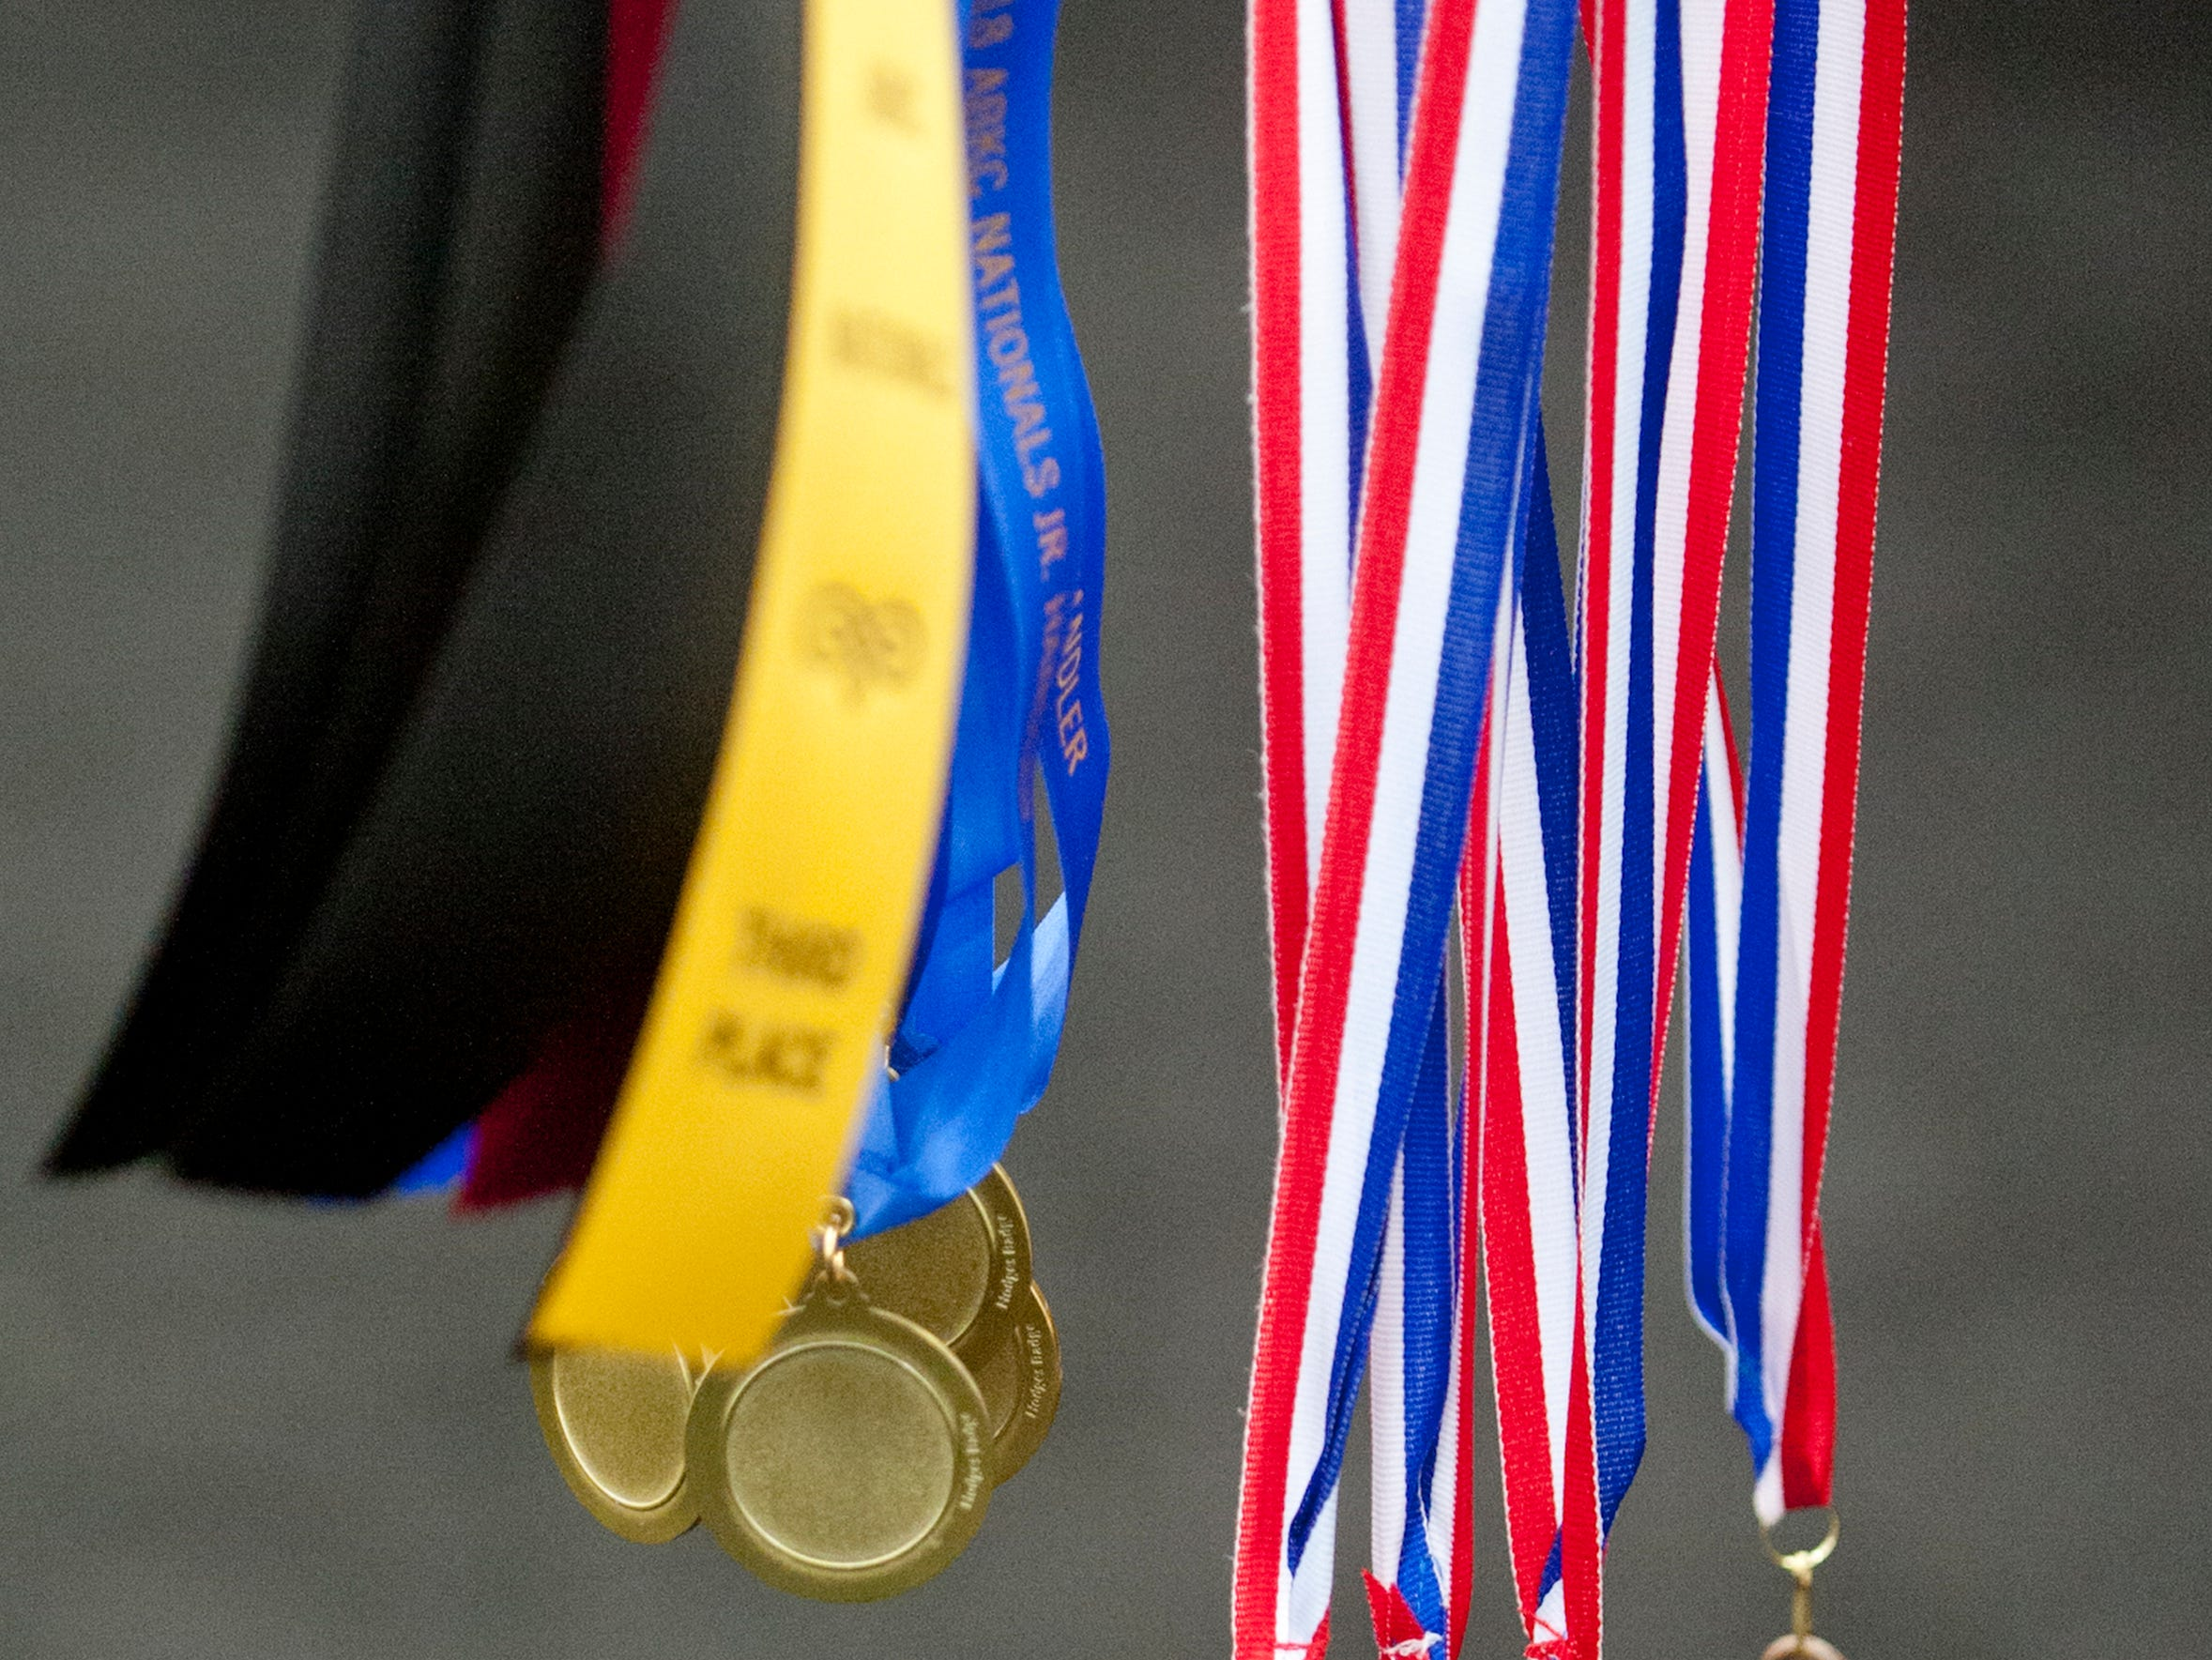 Detail shot of Junior Handler medals in the shape of bulldog heads and place award ribbons at the 2018 American Bully Kennel Club's 12th annual confirmation event at the Kentucky Convention Center in Louisville.November 10, 2018